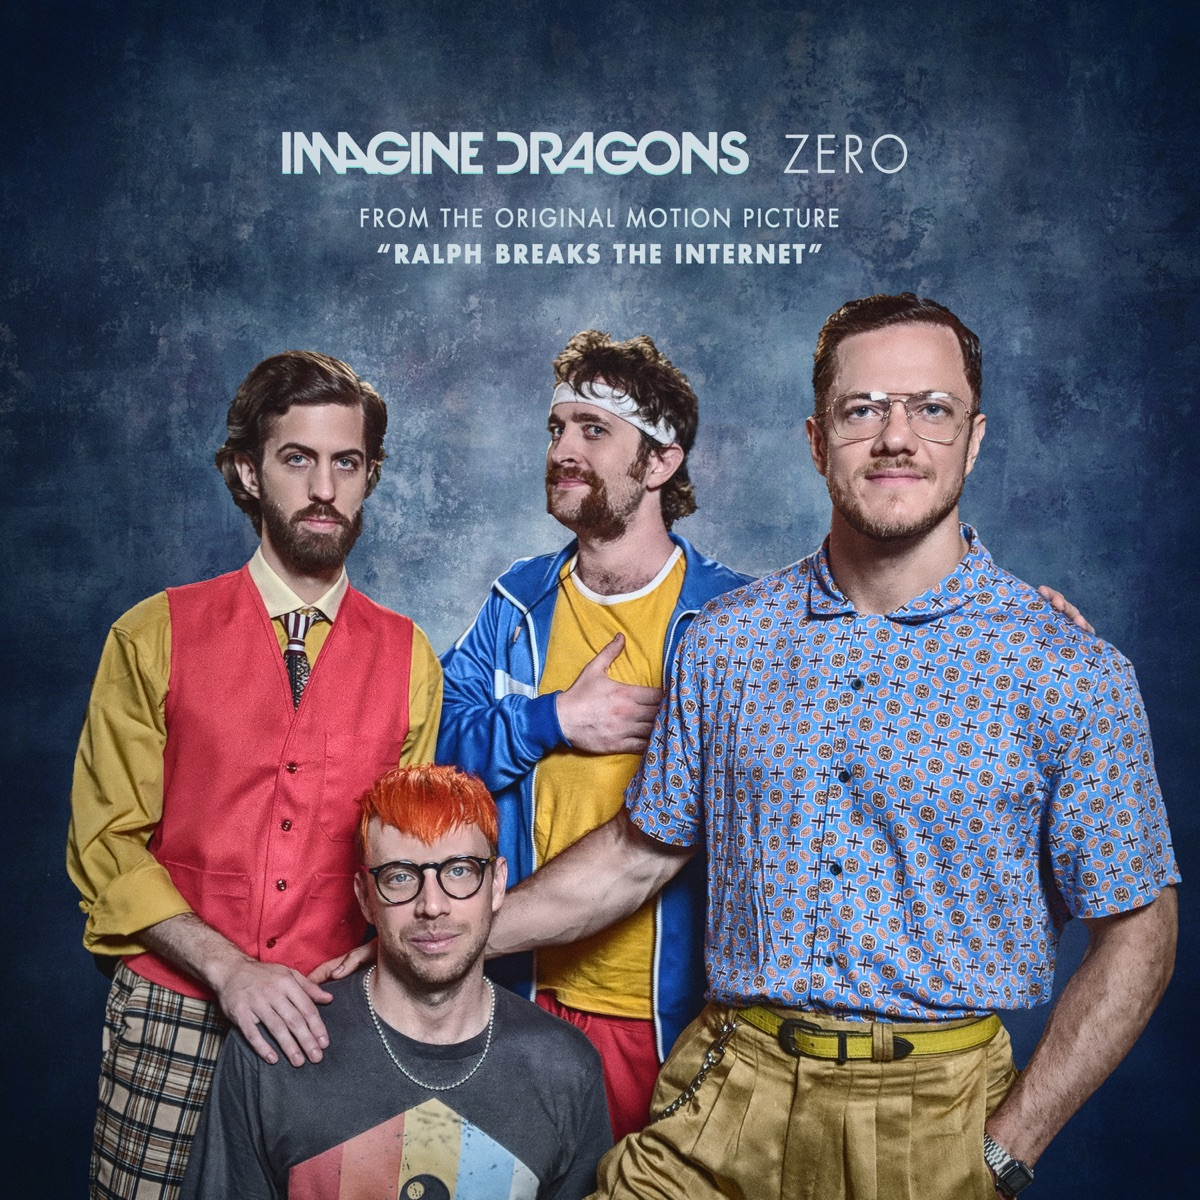 Zero From the Original Motion Picture Ralph Breaks The Internet - Single Imagine Dragons CD cover